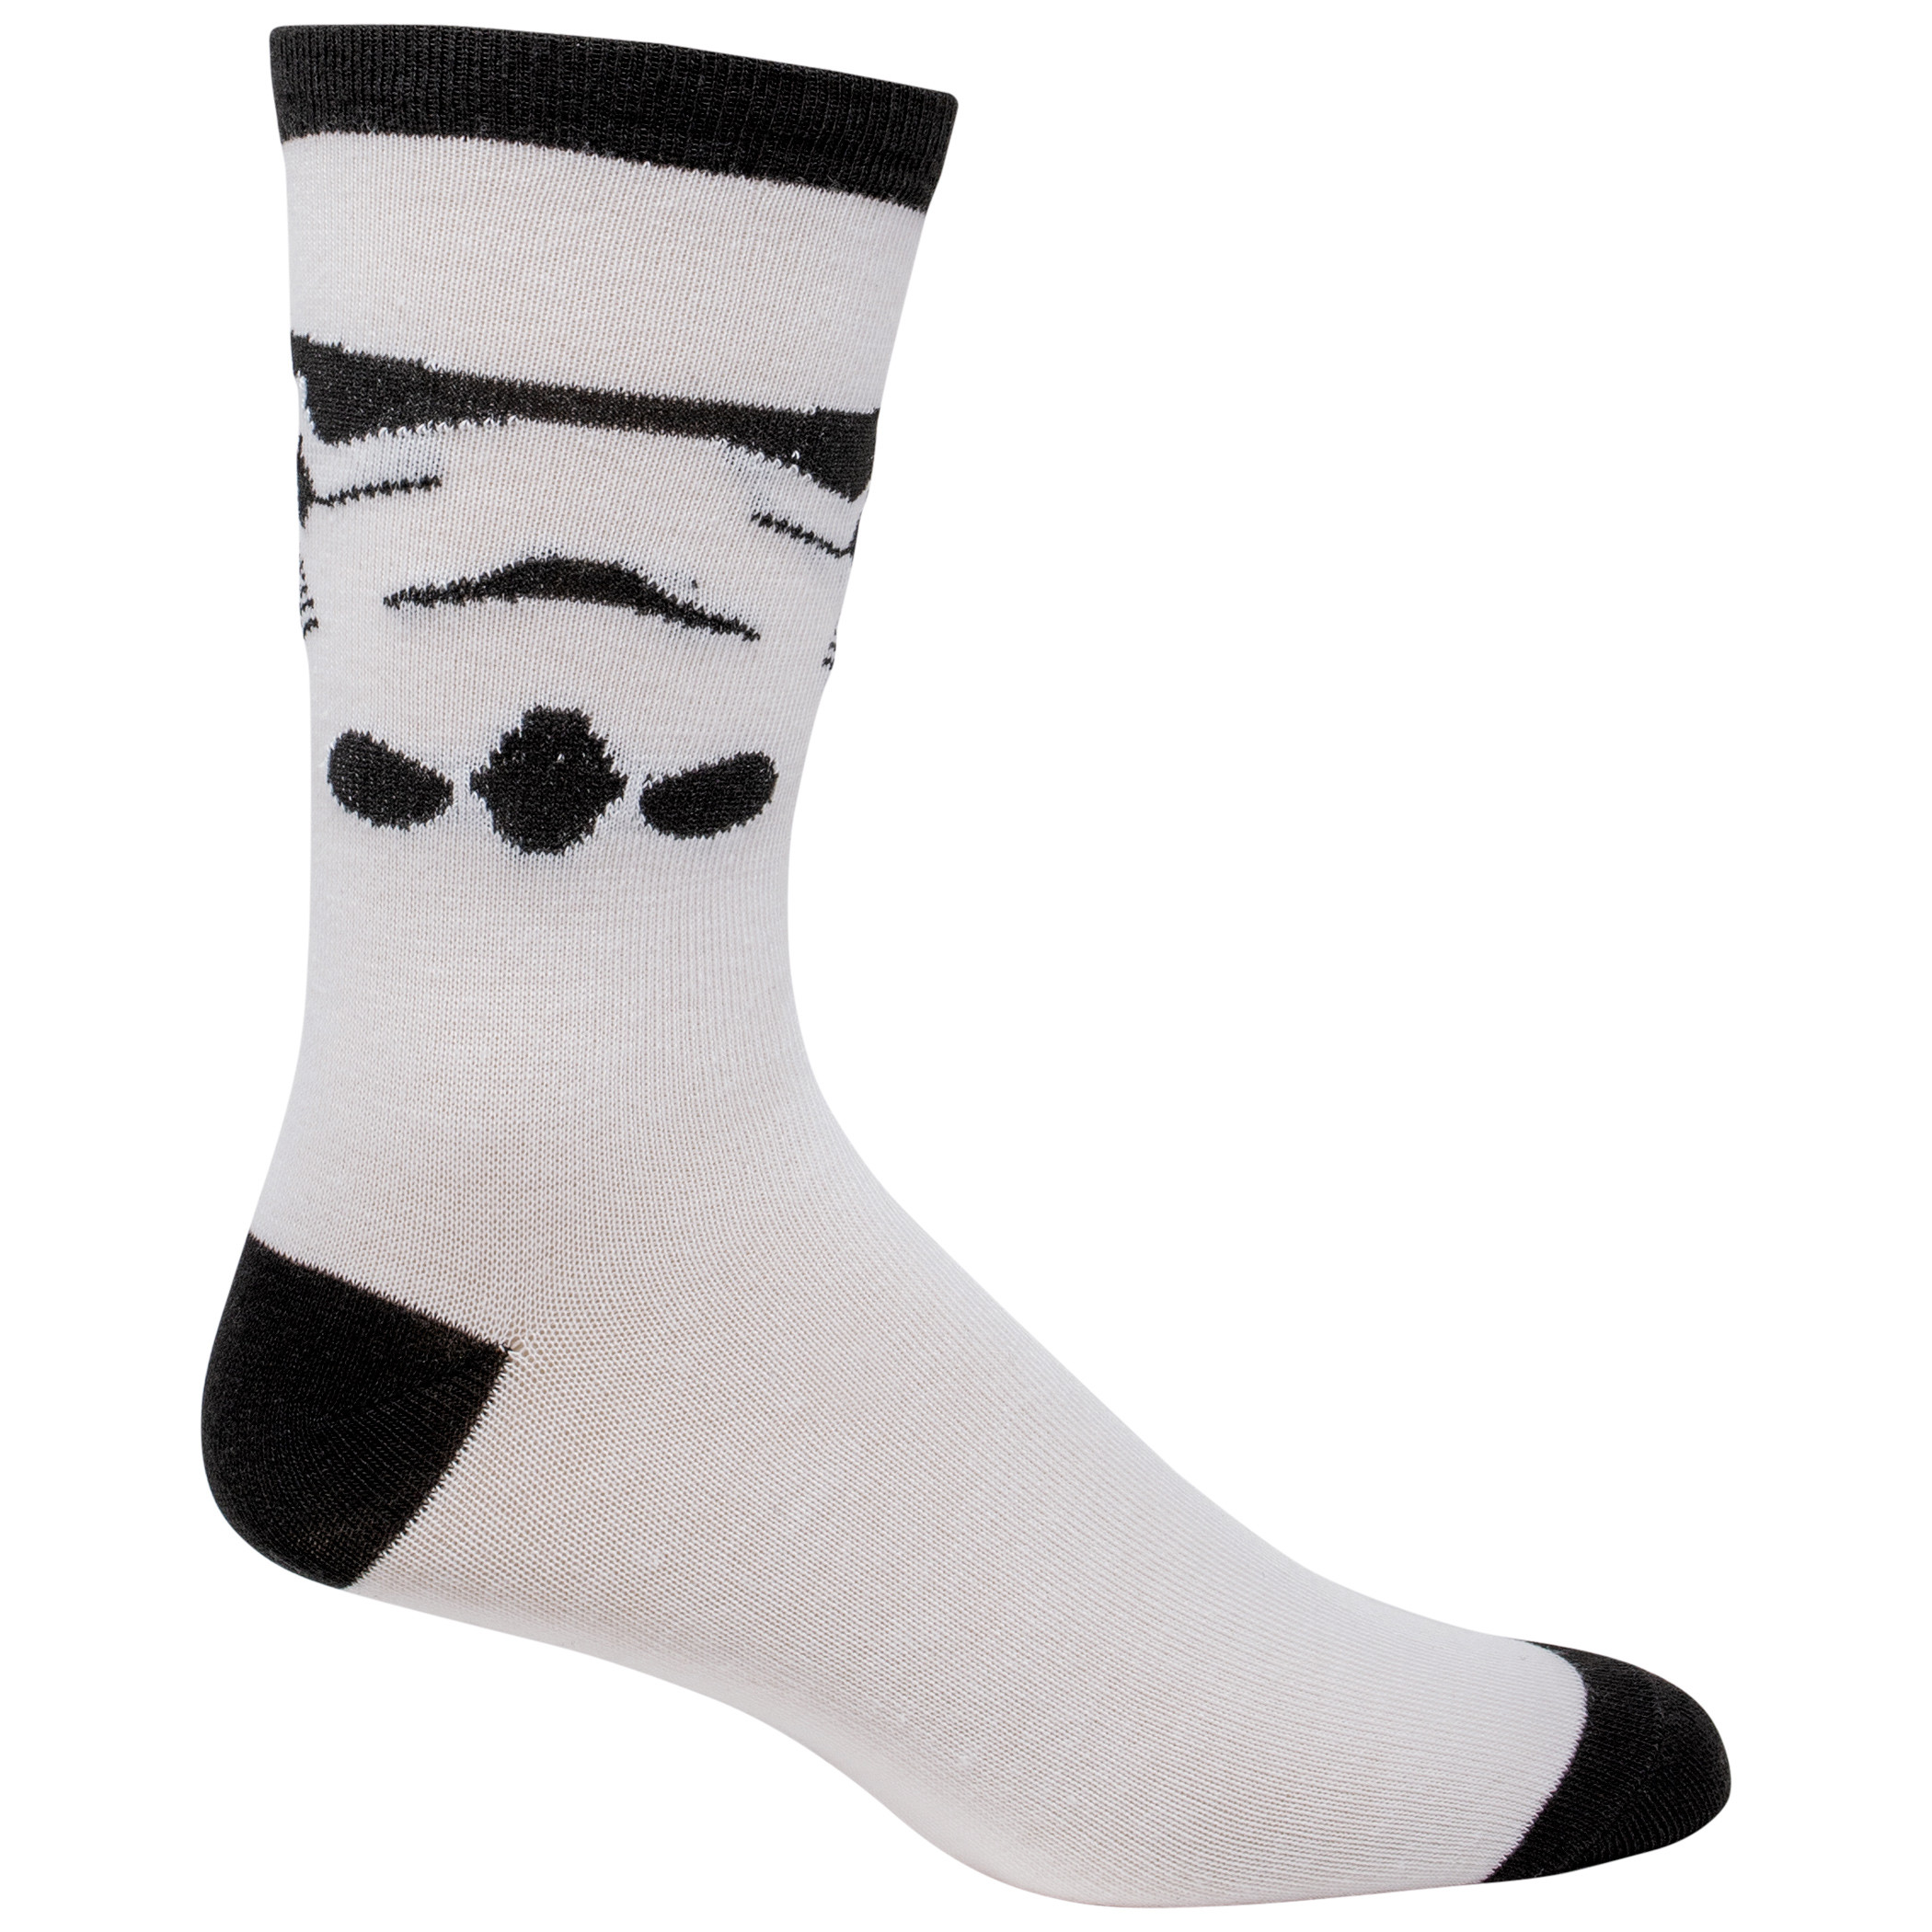 Star Wars Stormtrooper Costume Character Crew Socks